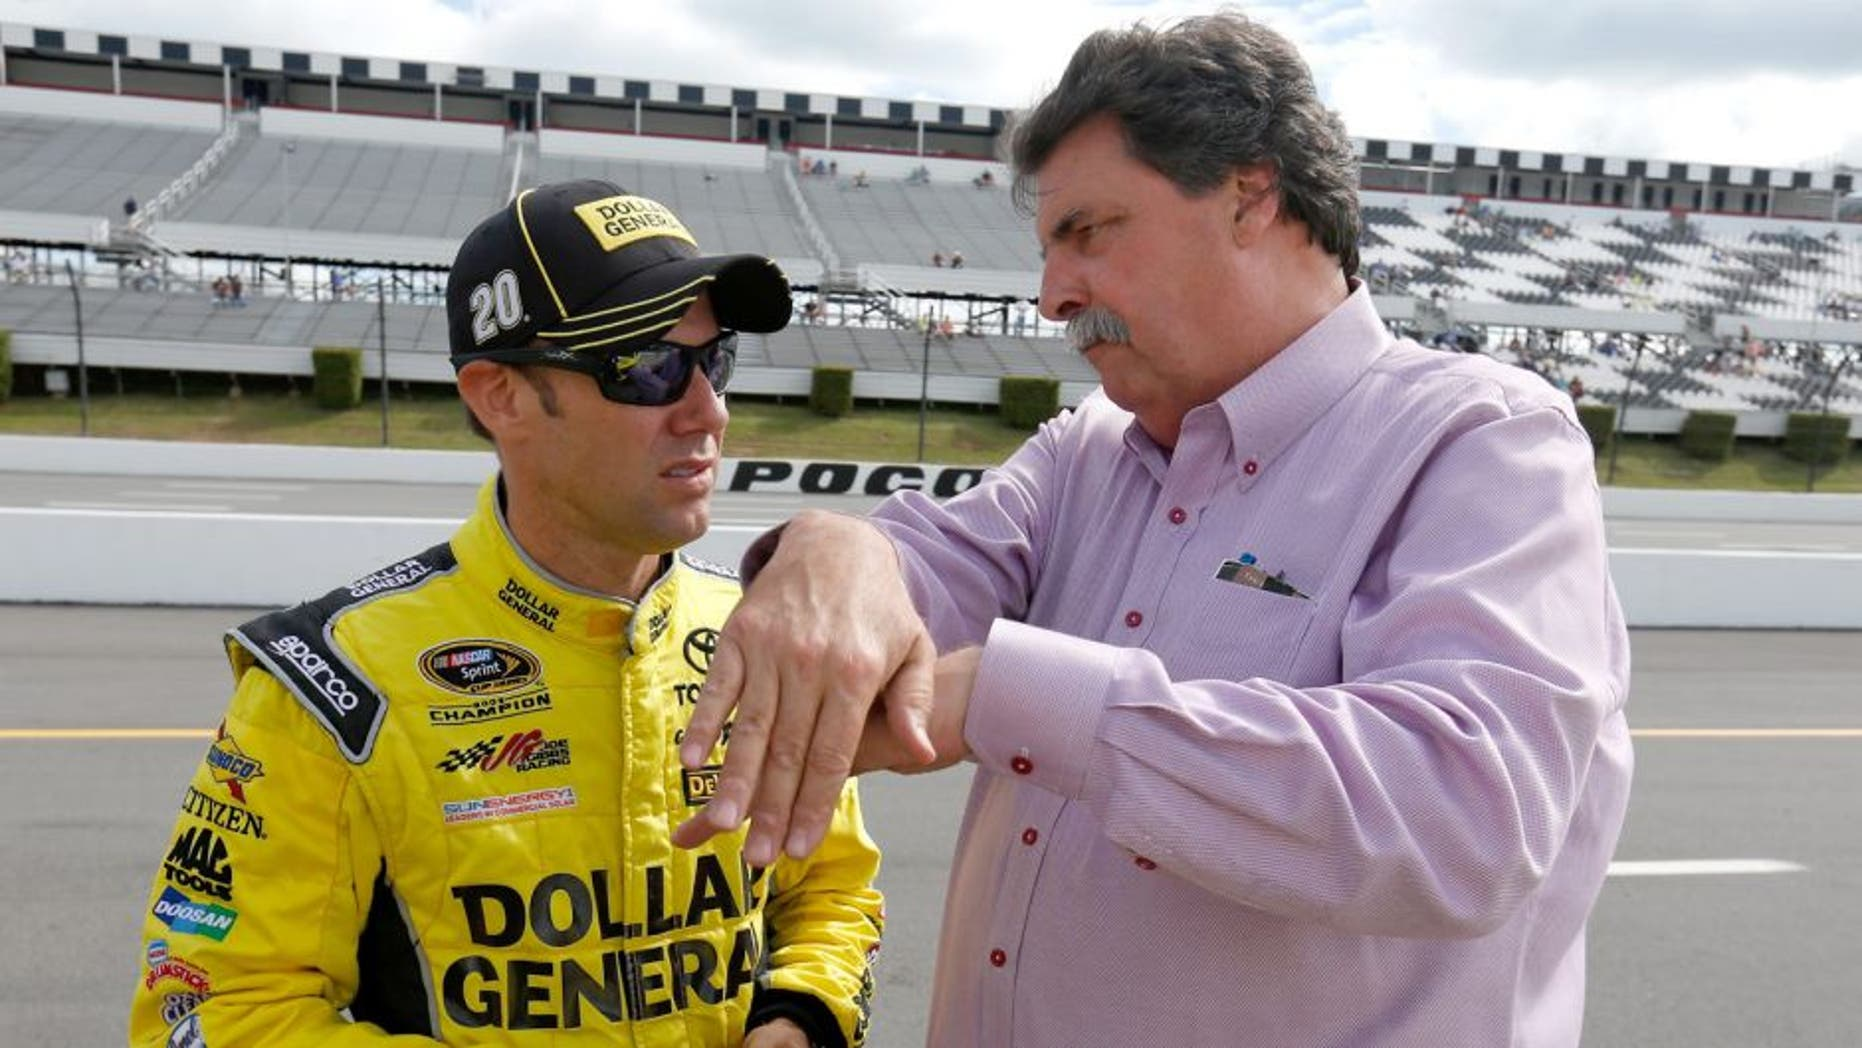 """LONG POND, PA - JUNE 05: Matt Kenseth, driver of the #20 Dollar General Toyota, left, talks with Vice Chairman of NASCAR Mike Helton on the grid prior to qualifying for the NASCAR Sprint Cup Series Axalta """"We Paint Winners"""" 400 at Pocono Raceway on June 5, 2015 in Long Pond, Pennsylvania. (Photo by Todd Warshaw/NASCAR via Getty Images)"""